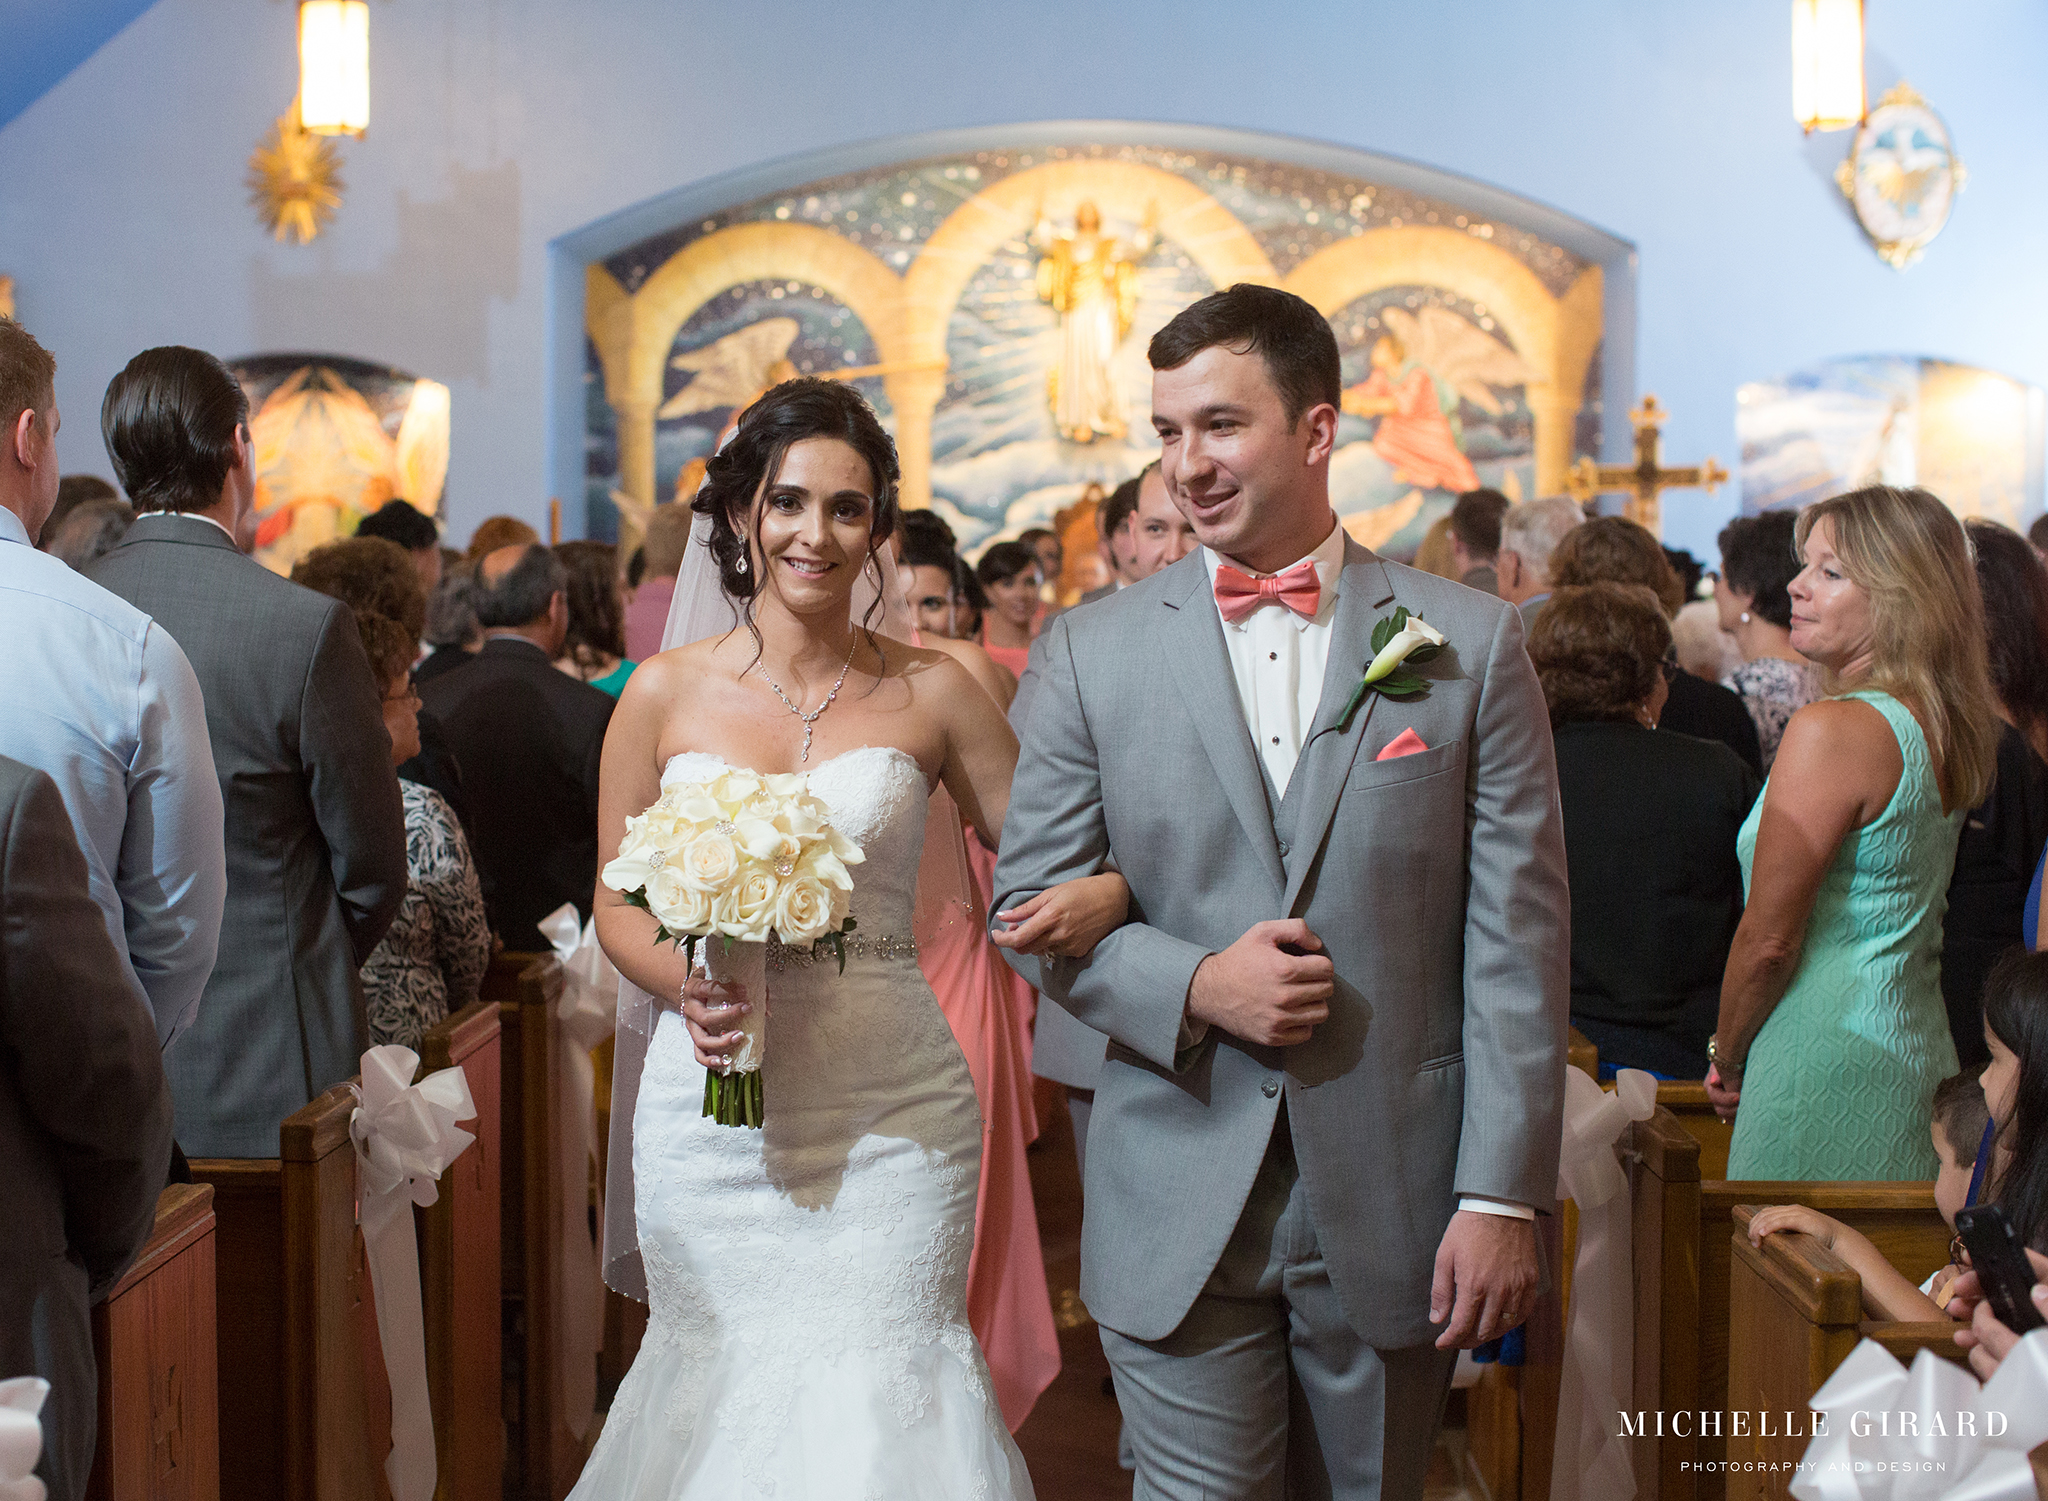 TraditionalLudlowMAWedding_MichelleGirardPhotography02.jpg